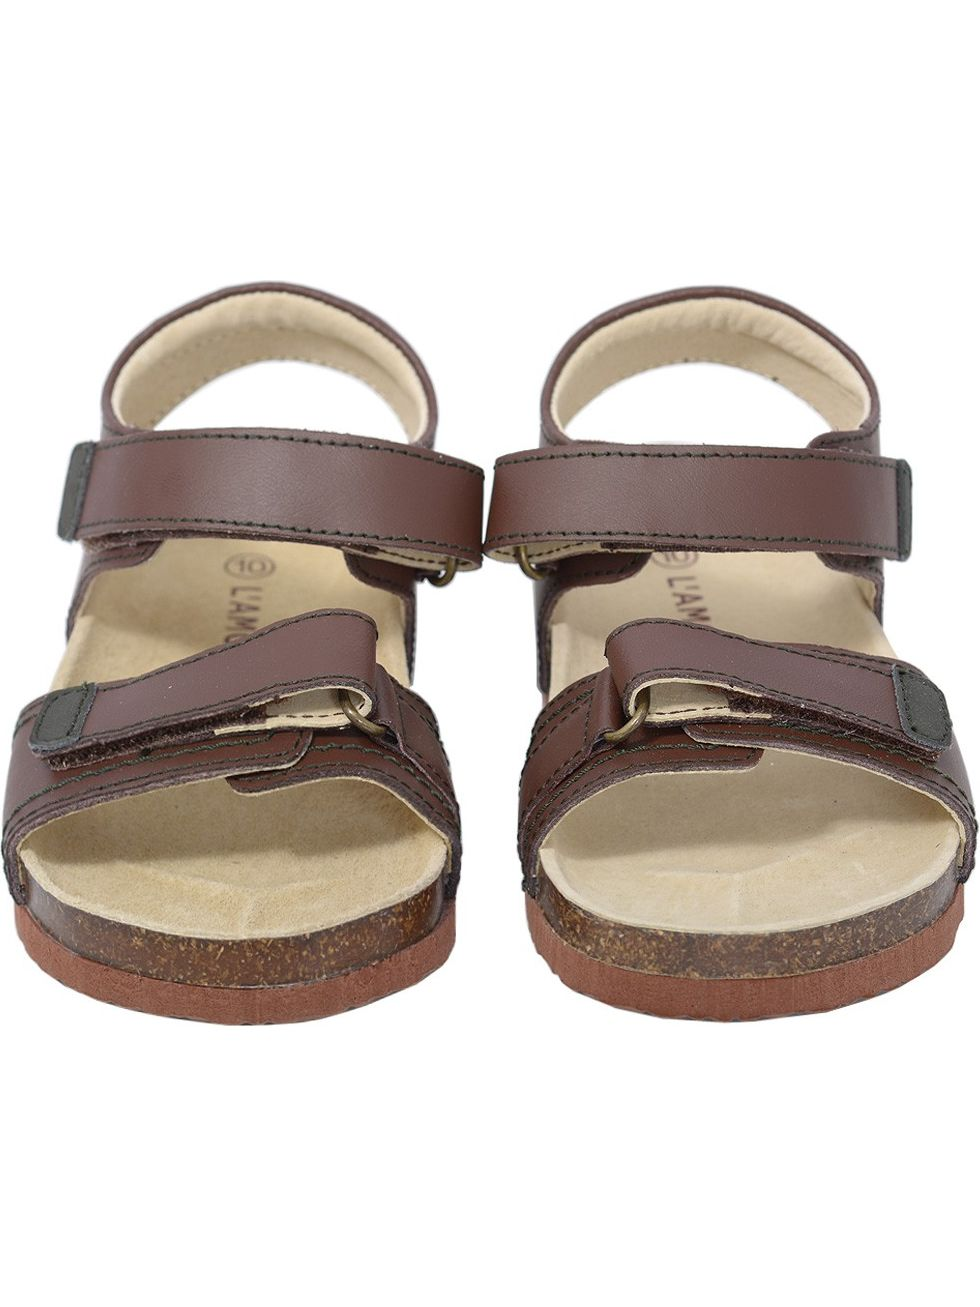 L'Amour Strap Dark Brown Soft Footbed Strap L'Amour Sandals Little Girls 11-4 a20219